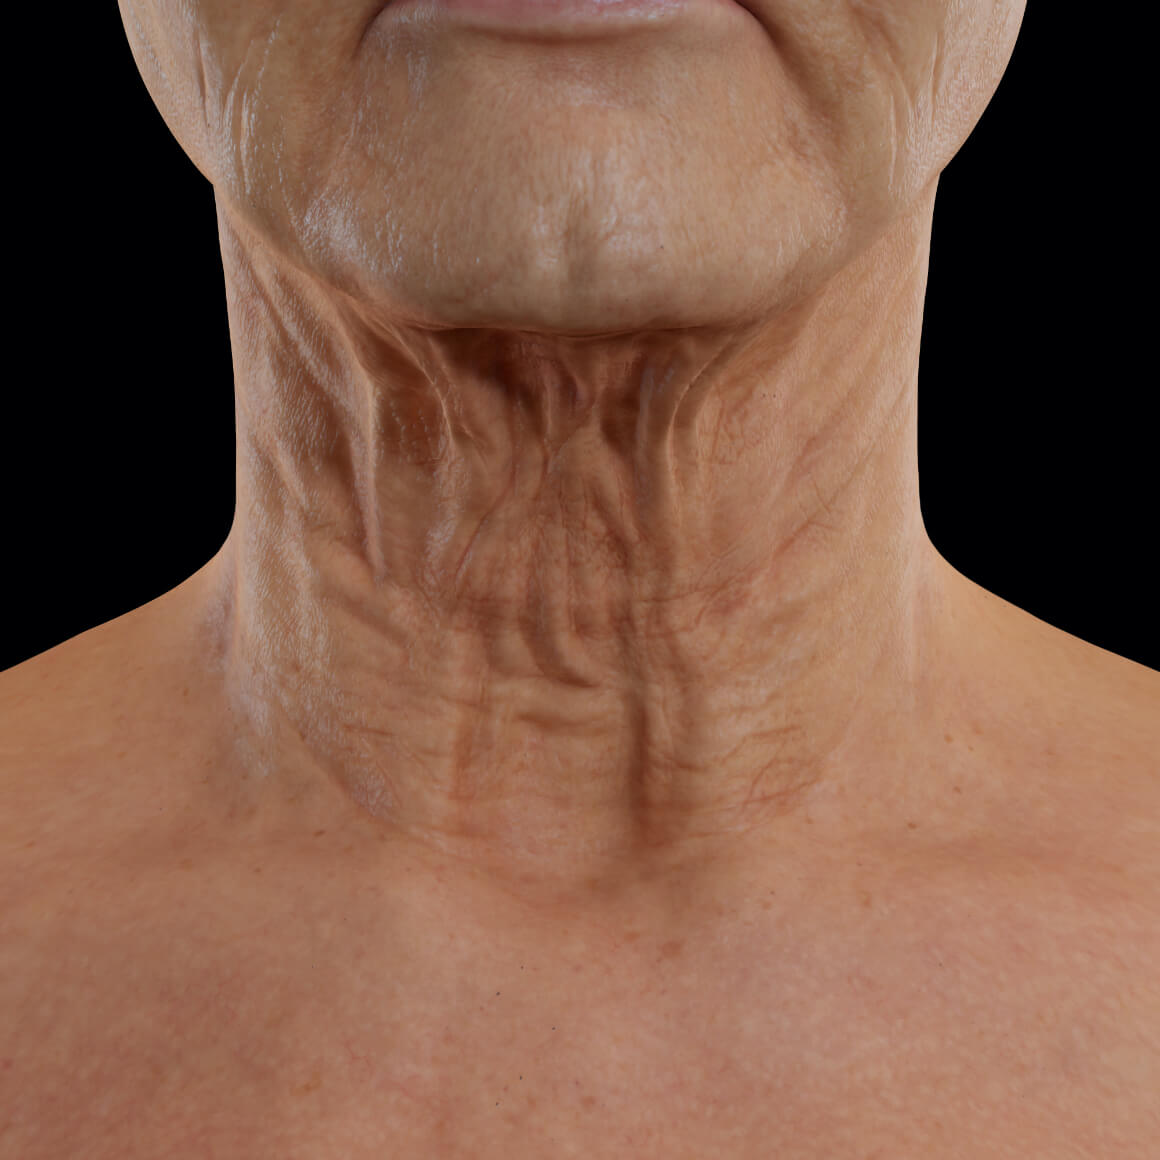 Female patient from Clinique Chloé facing front with laxity in the neck area